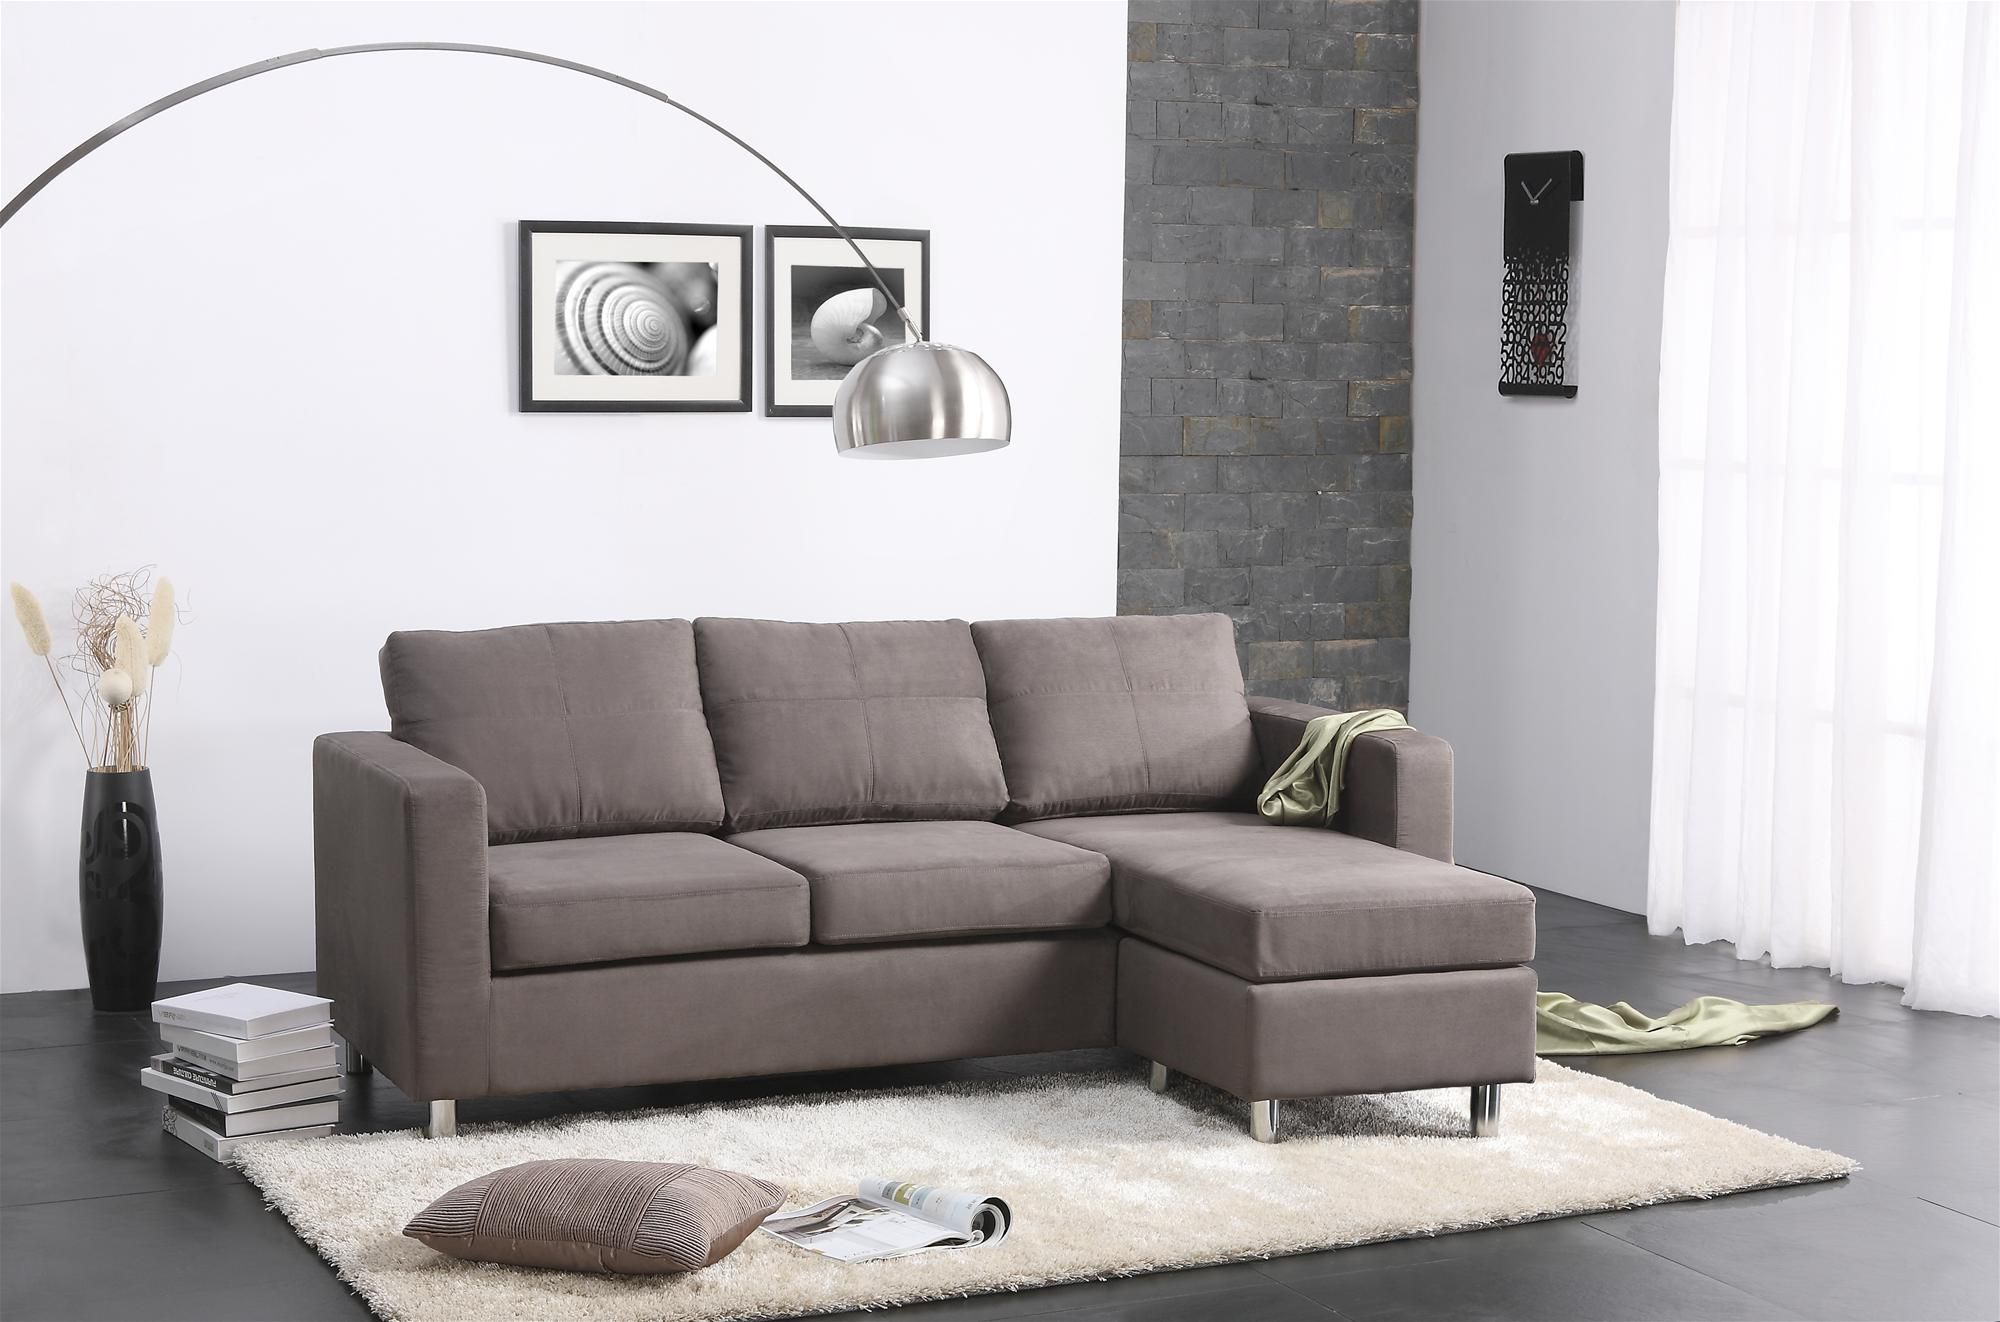 $300 Small Spaces Sectional Sofa walmart